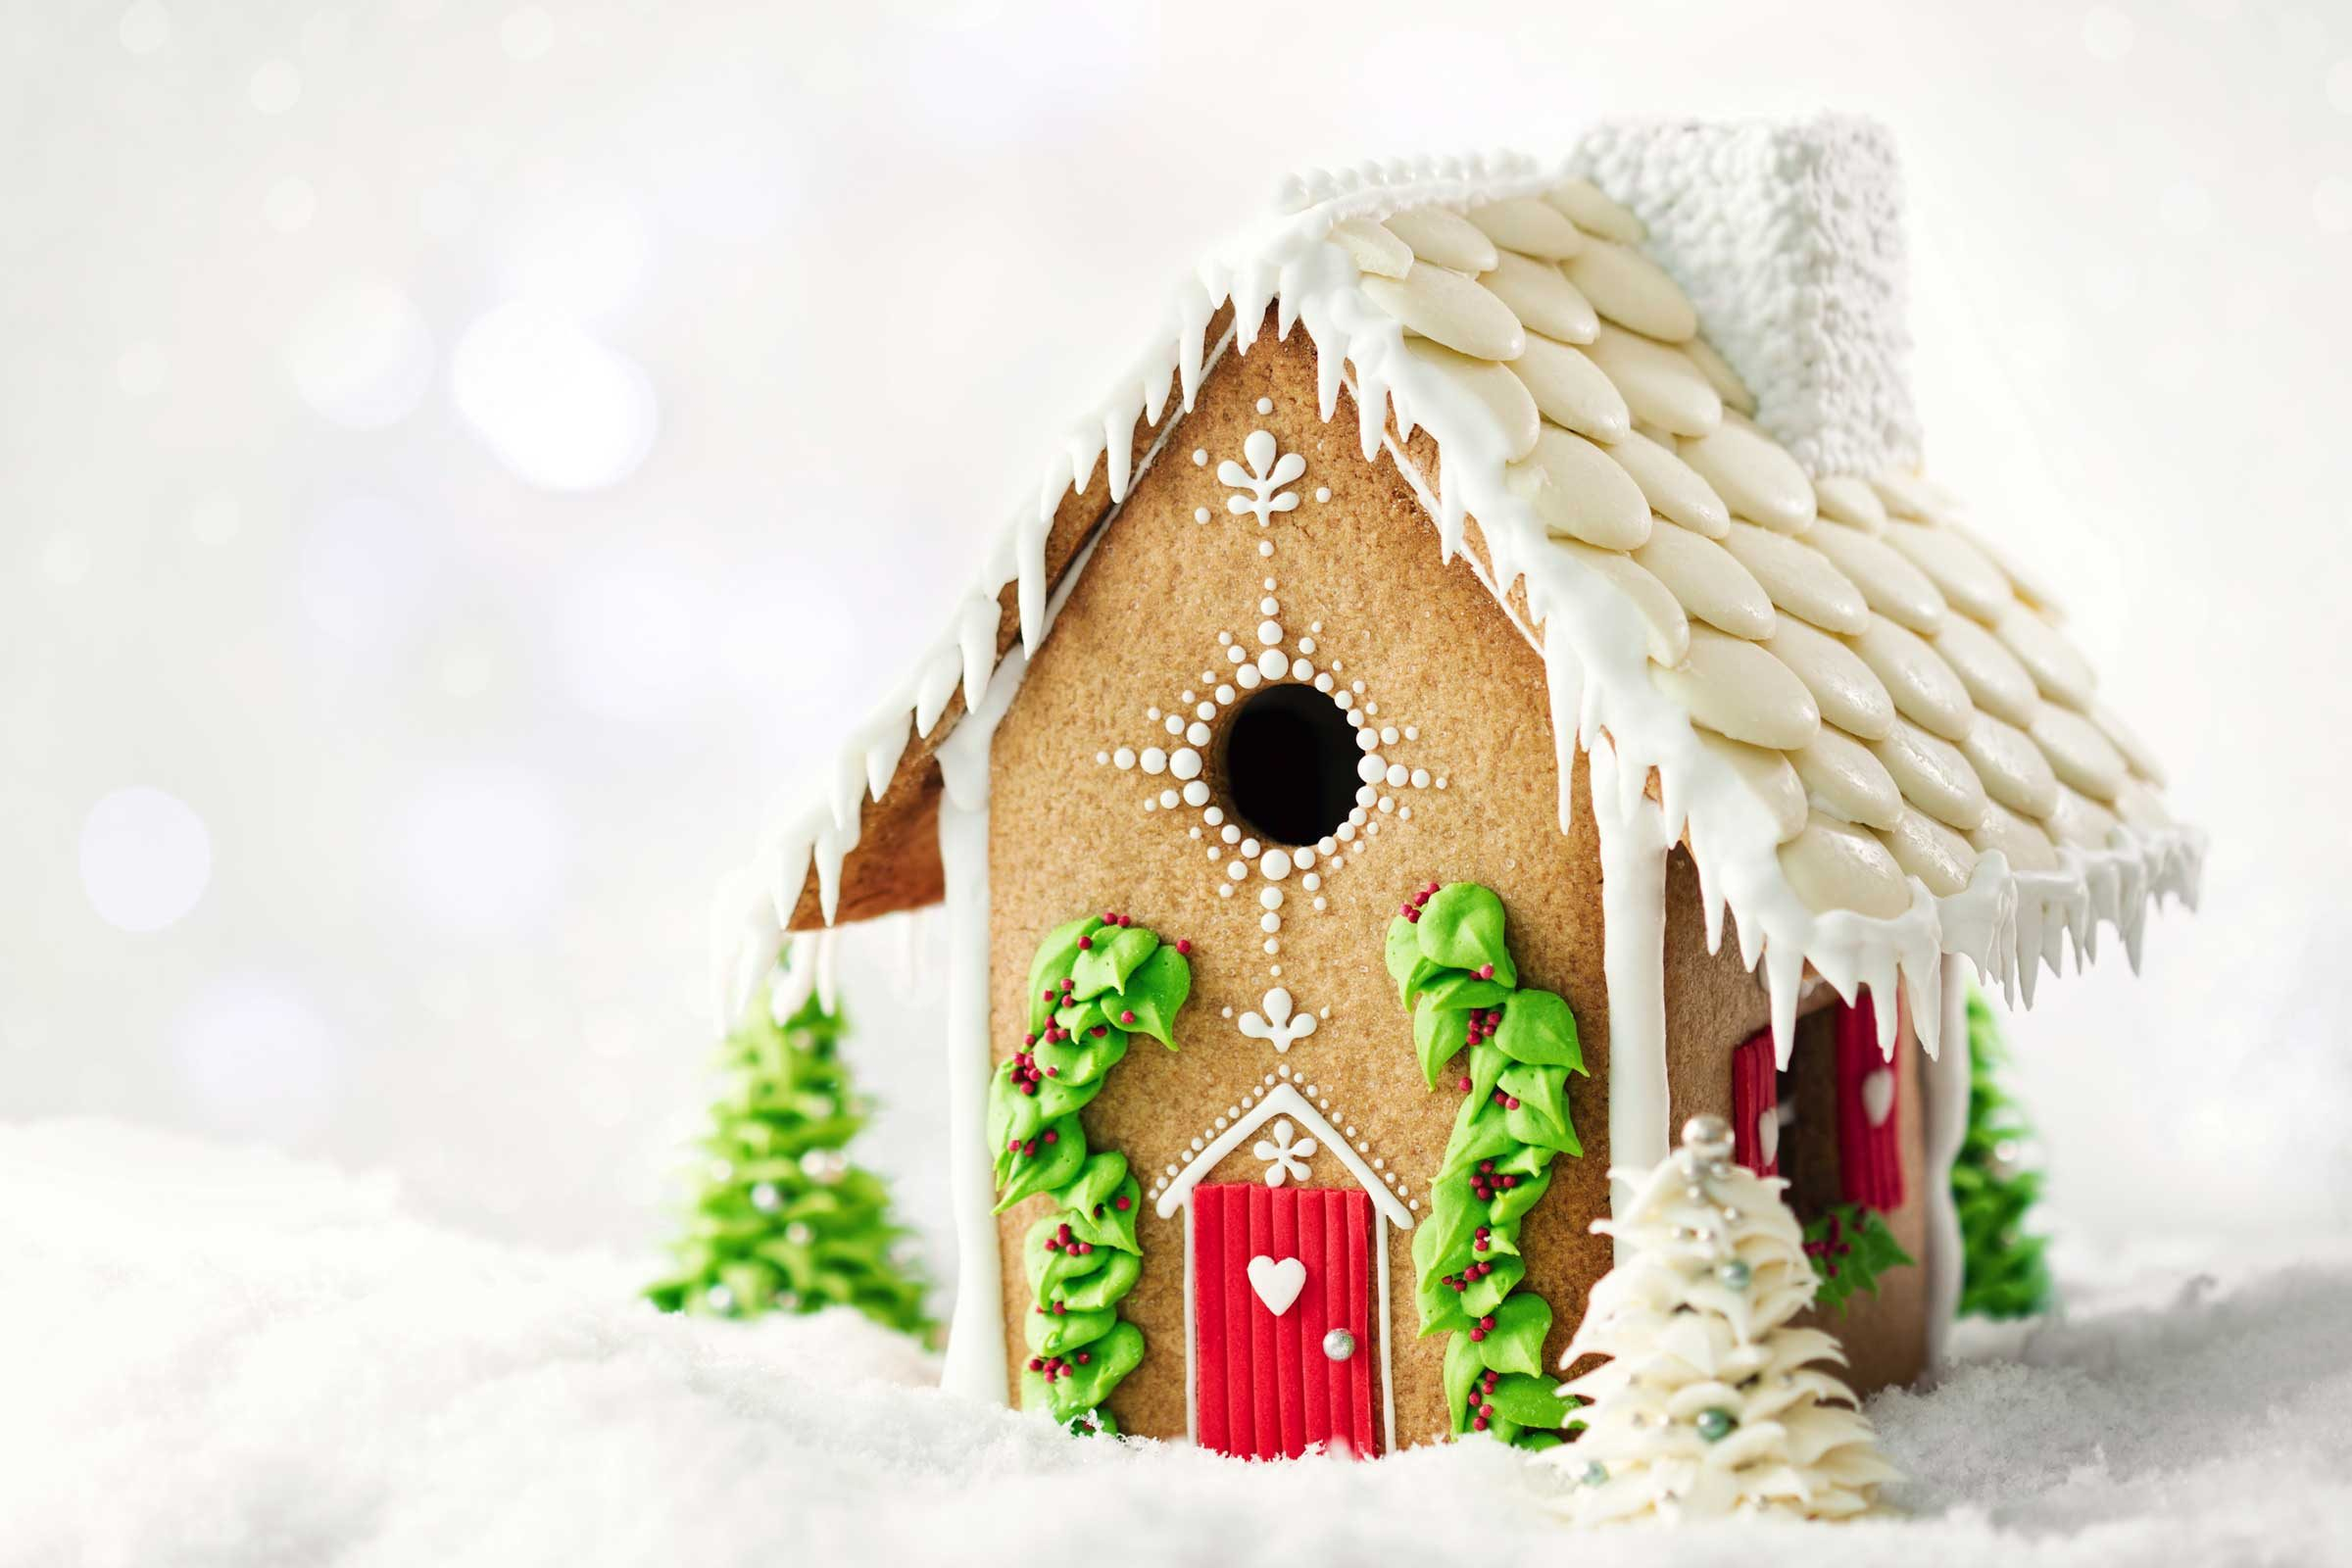 Gingerbread House Ideas And Decorating Tips Readers Digest - Christmas gingerbread house